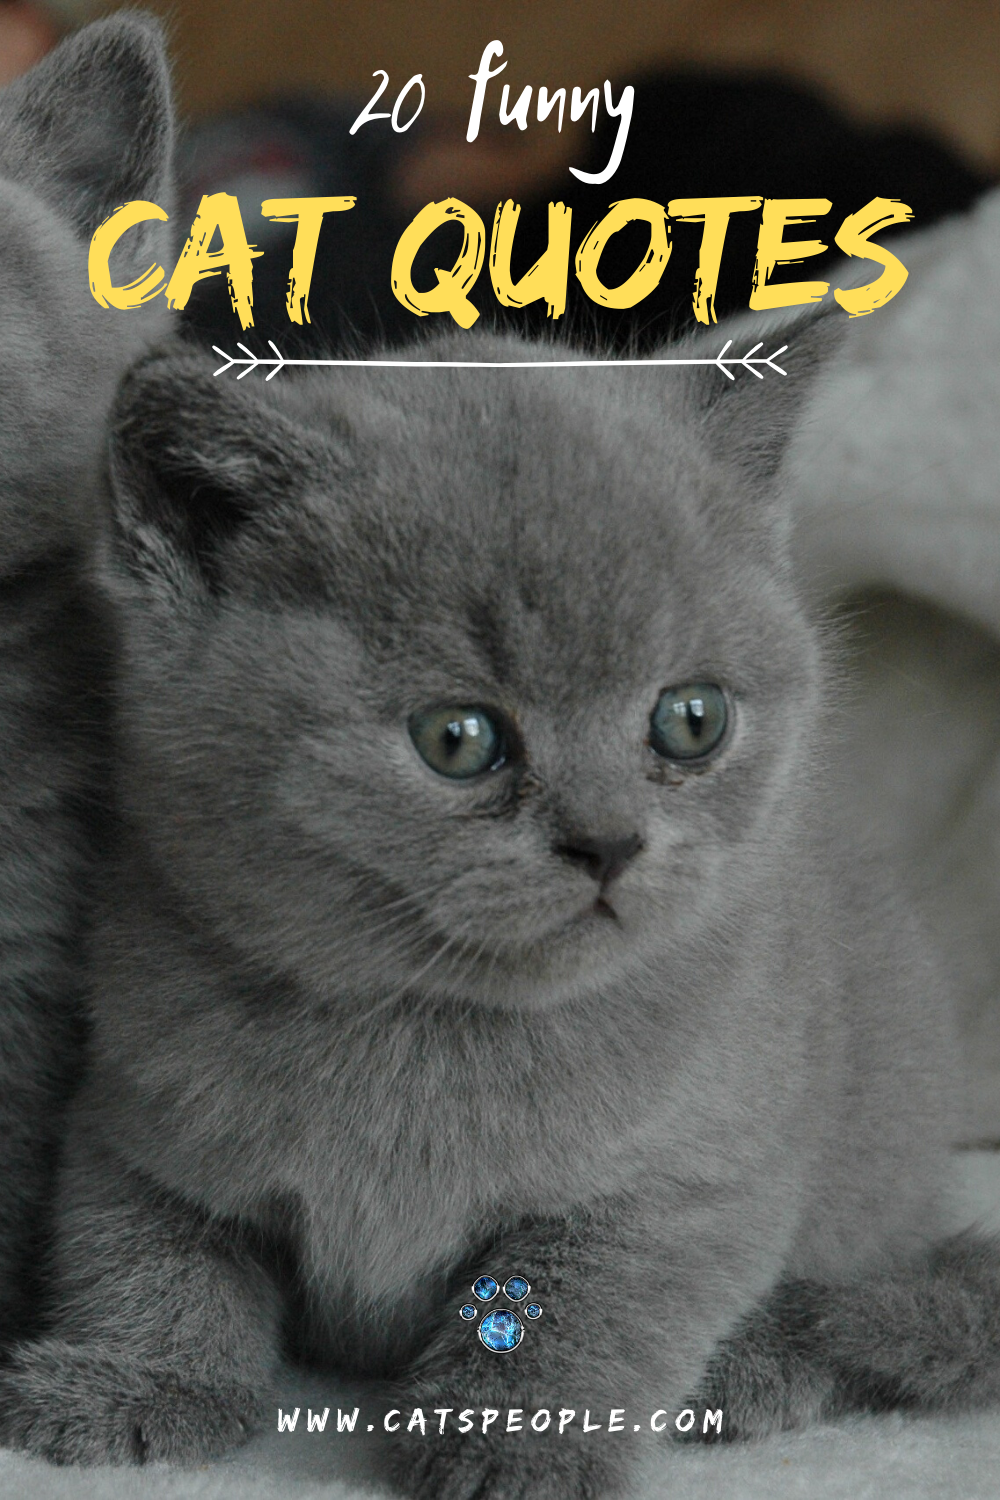 20 Funny Cat Quotes Cat quotes, Funny cats, Cat dad